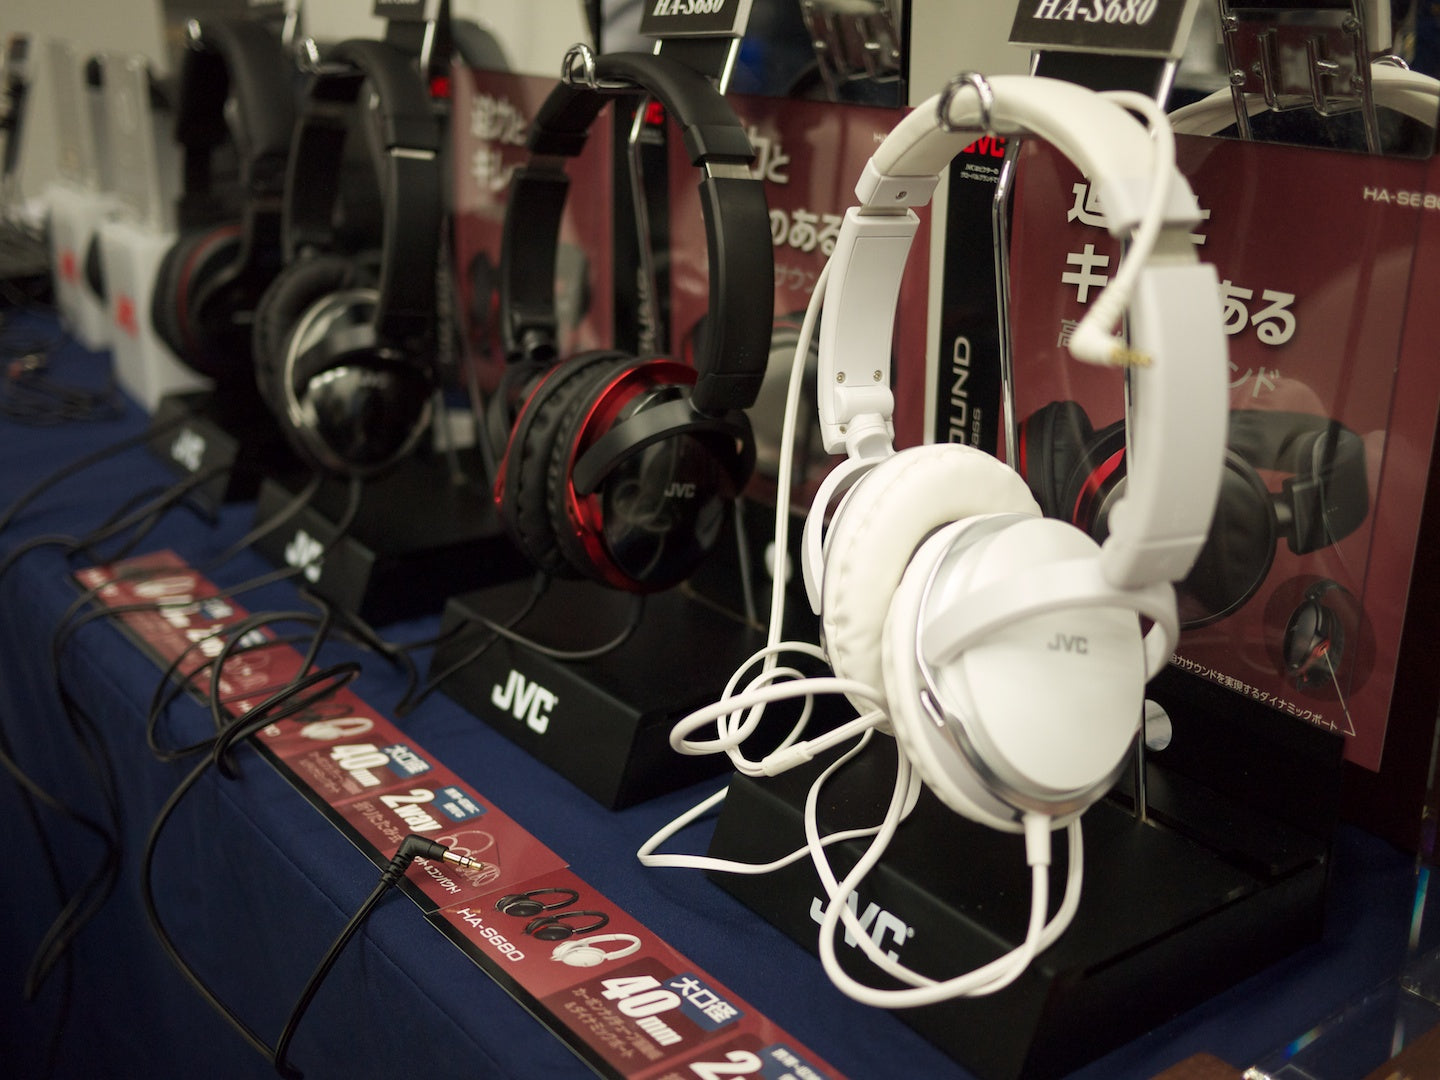 JVC's Standard Headphone Lineup